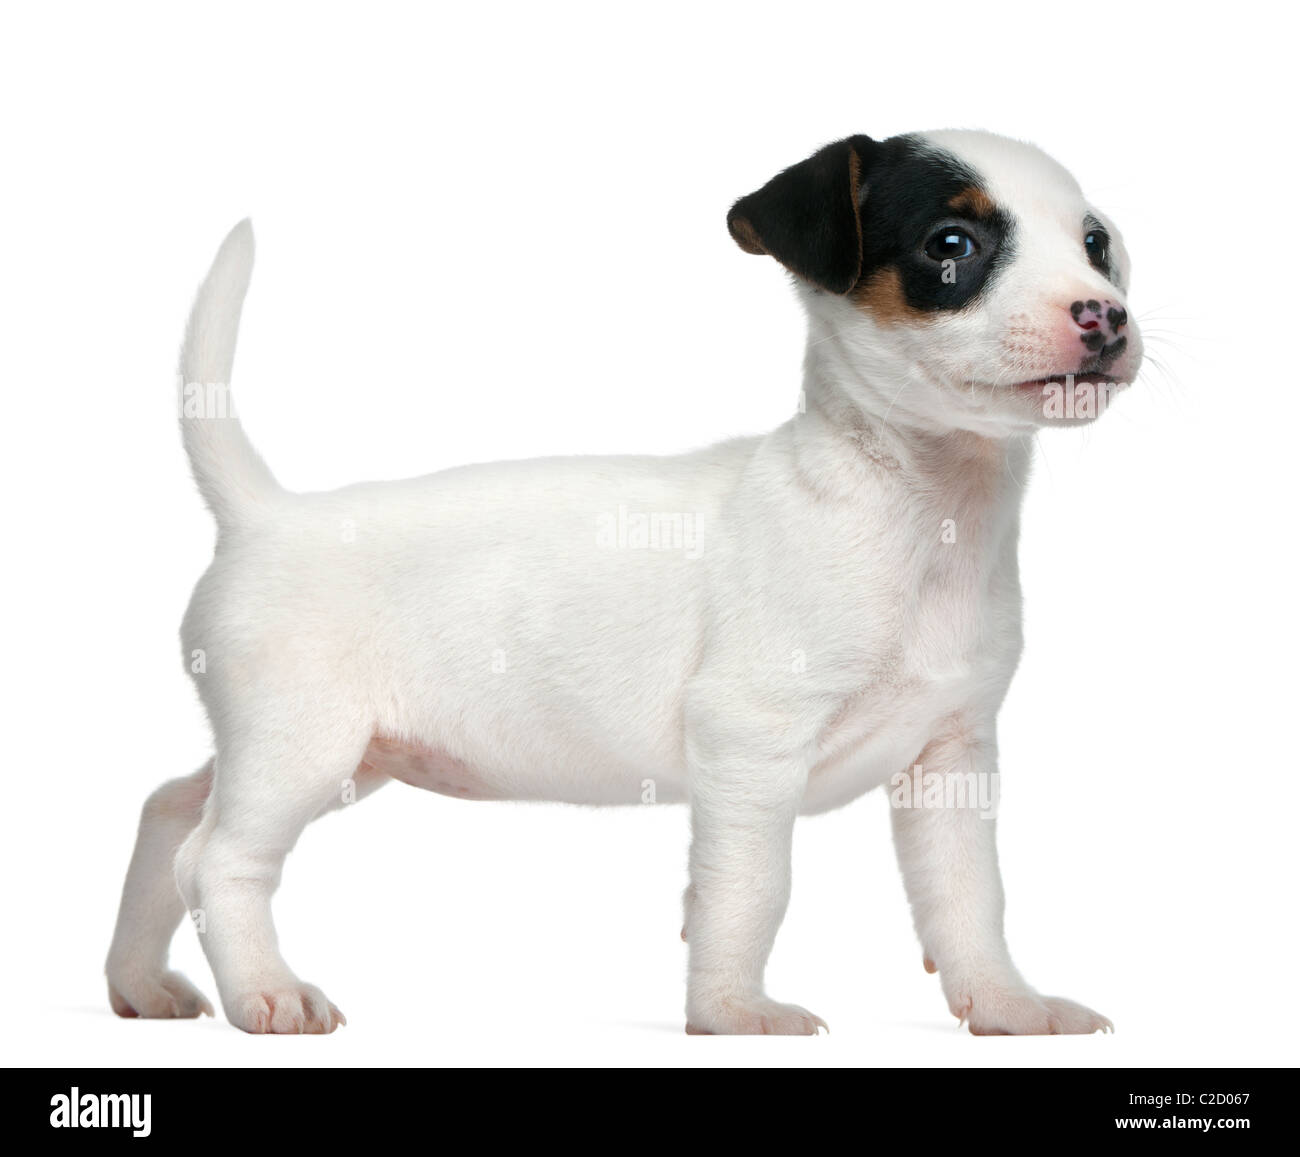 Jack Russell Terrier Puppy 7 Weeks Old Against White Background Stock Photo Alamy